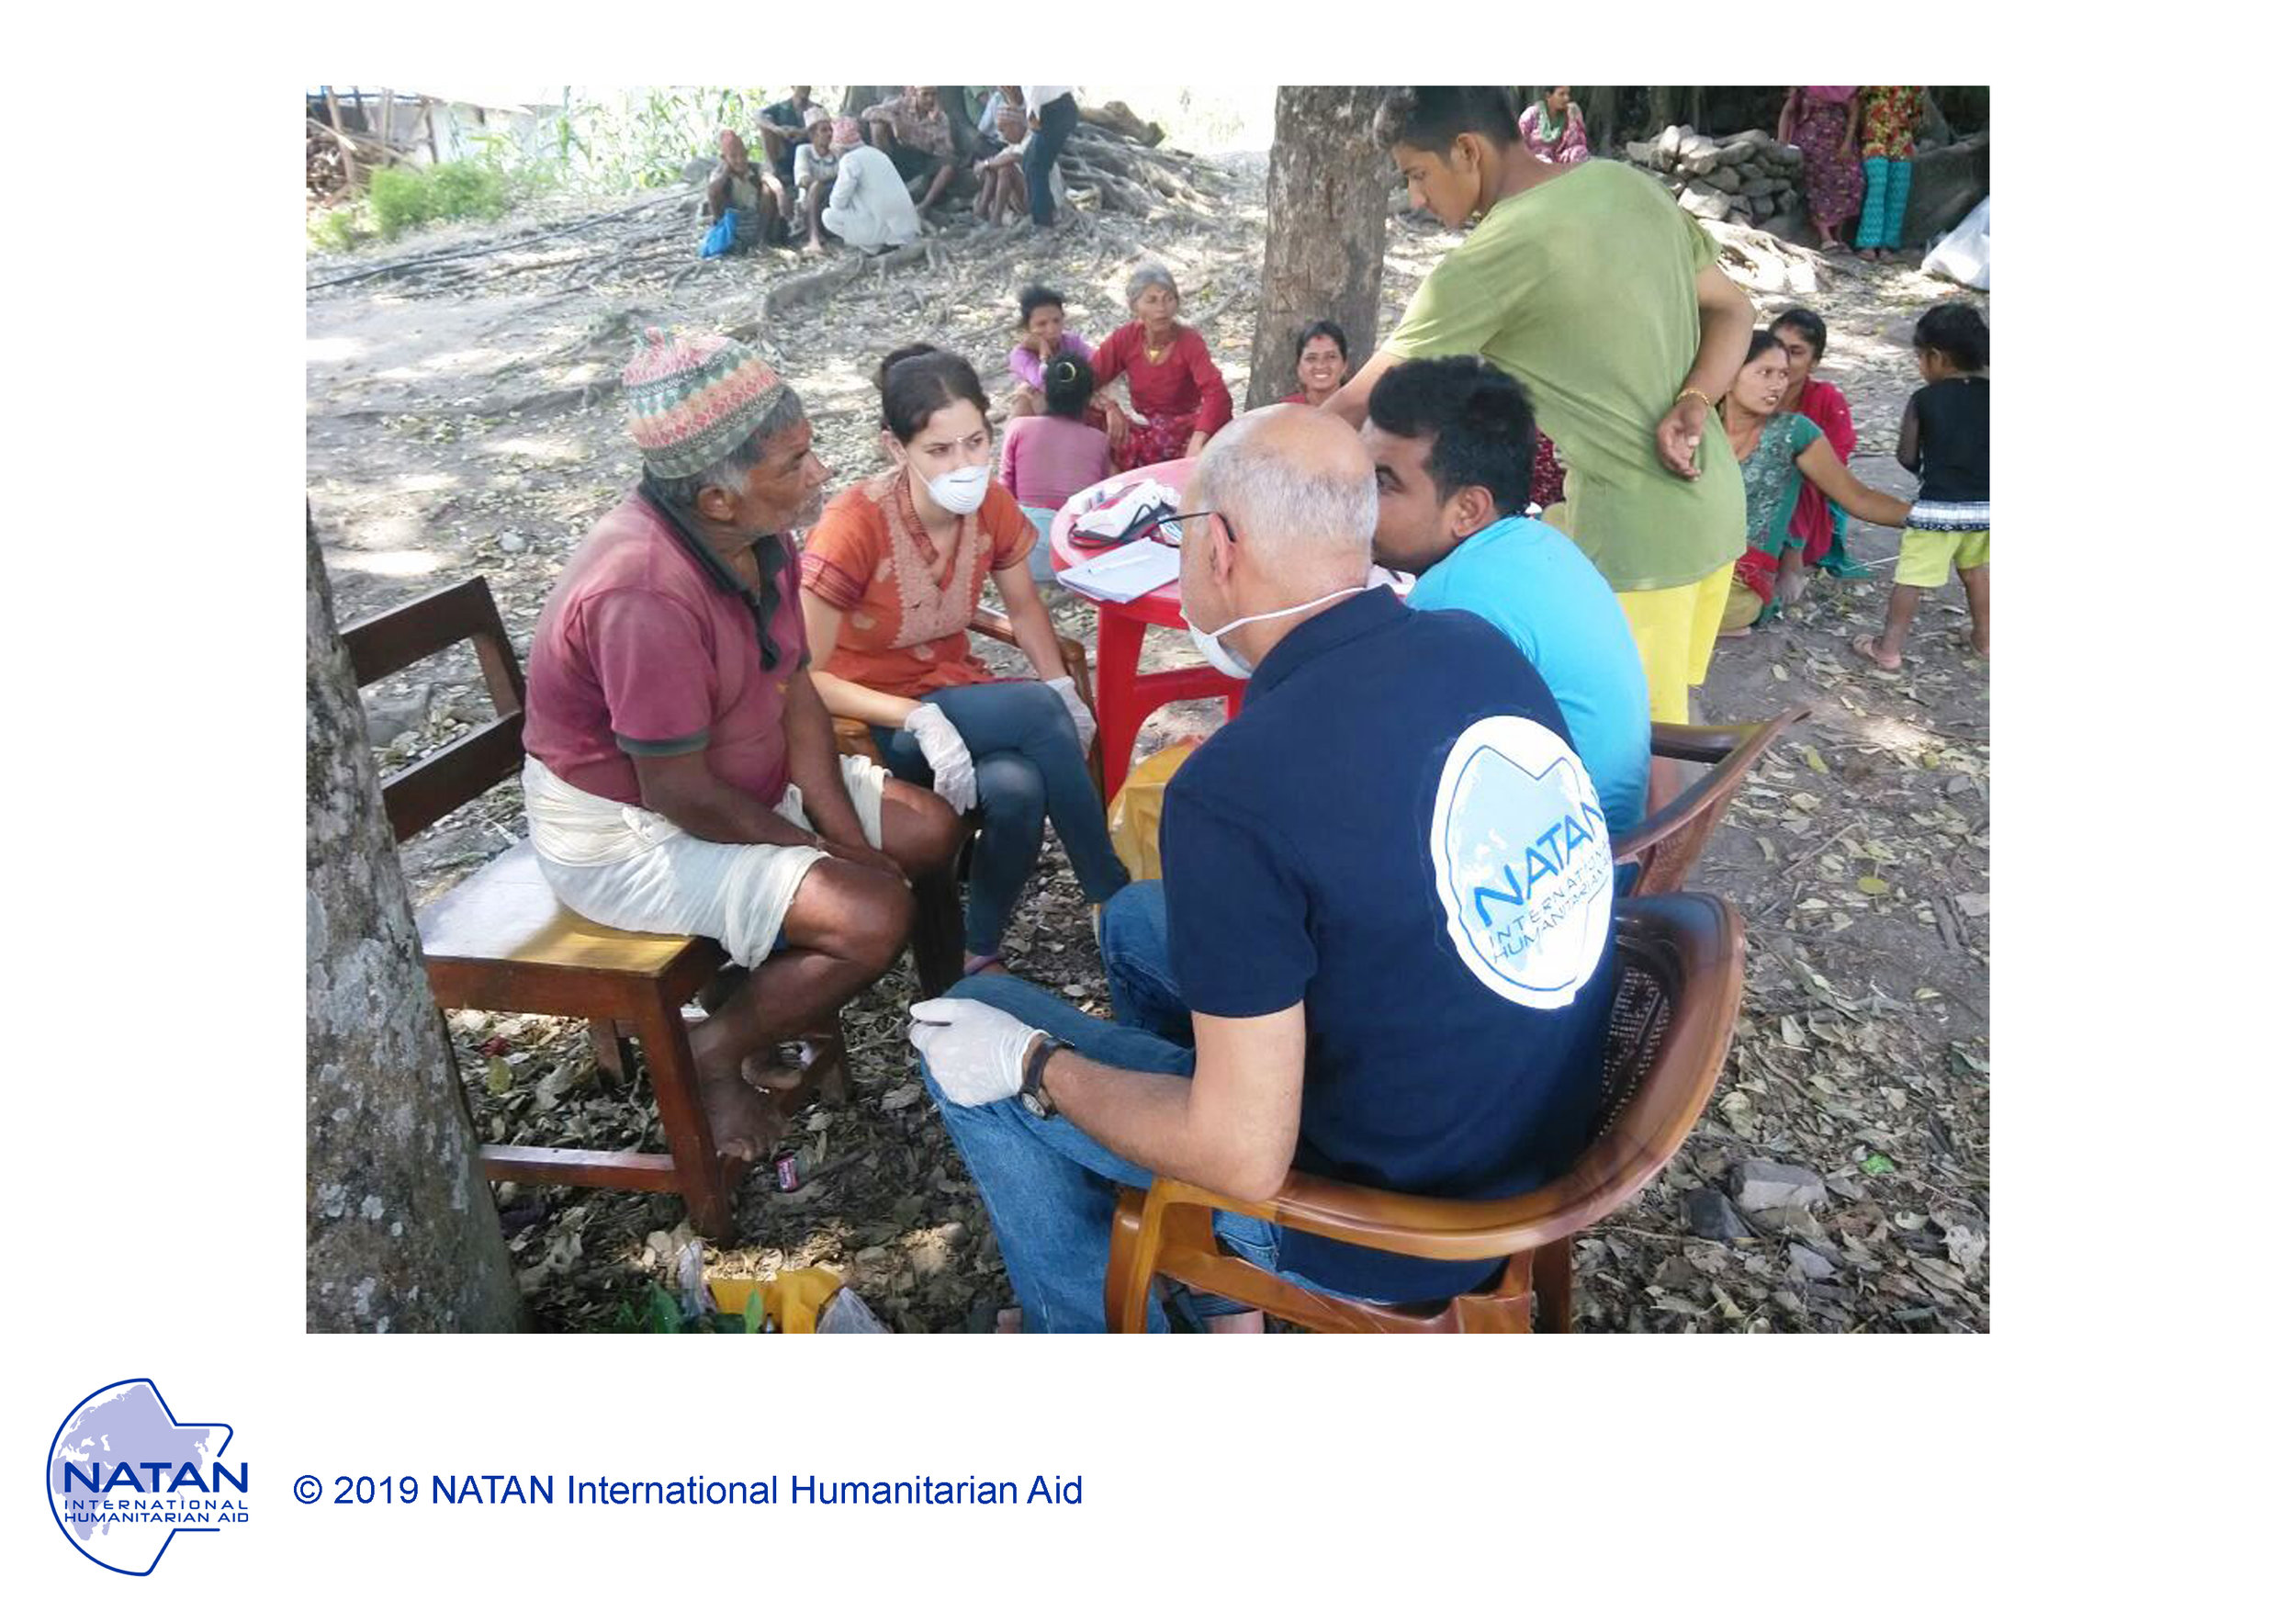 nepal 2015 - natan md performing medical assessment of survivors of nepal earthquake